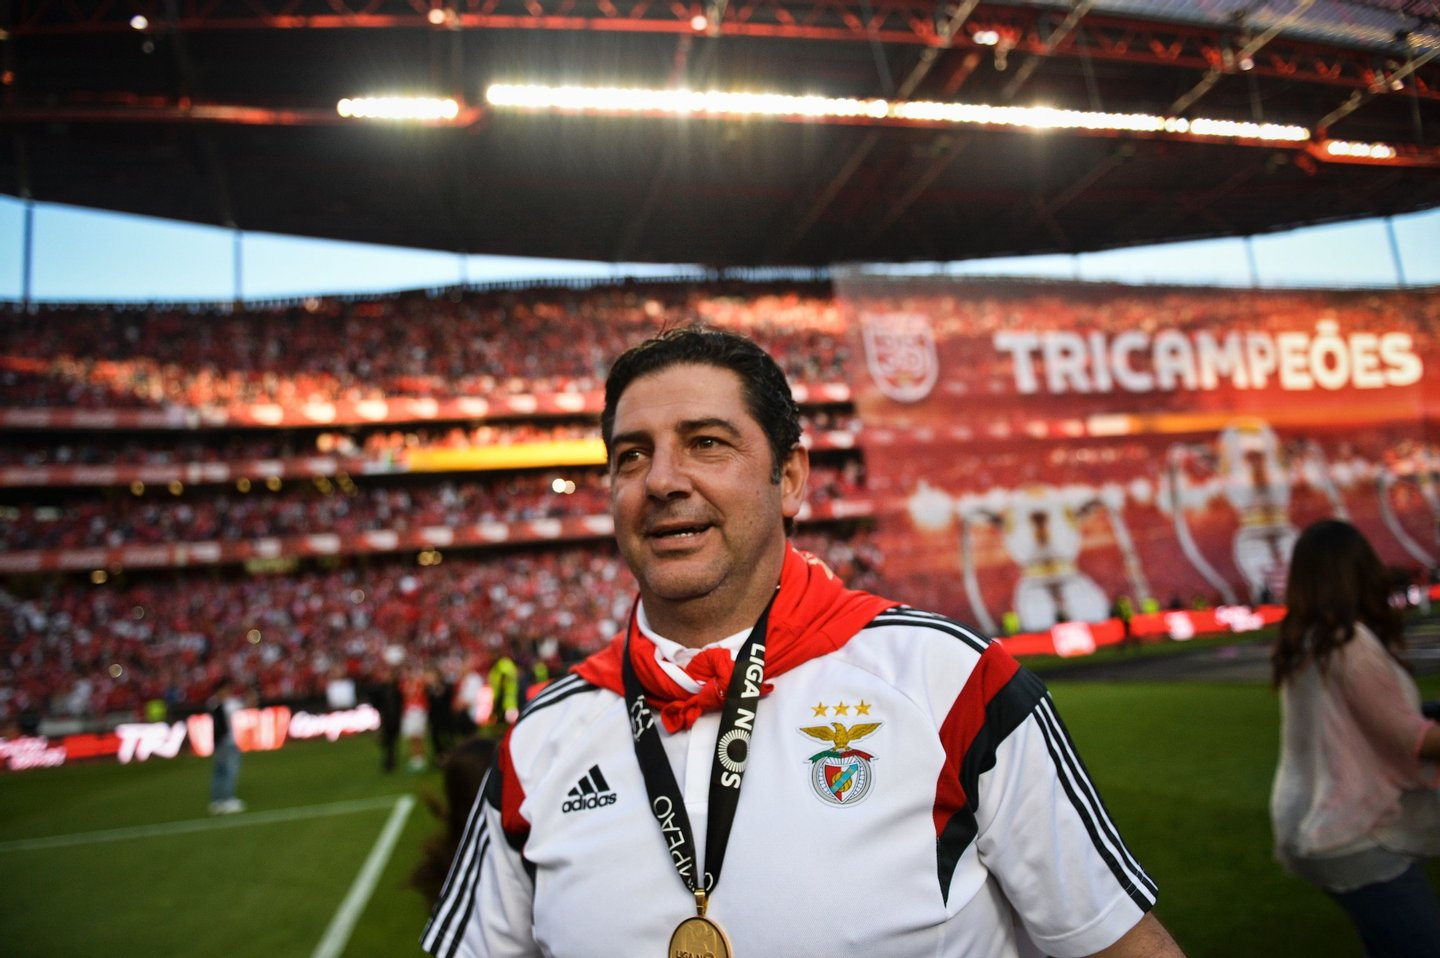 Benfica's head coach Rui Vitoria gestures as he celebrates Benfica's 35th Portuguese league title at the end of the Portuguese league football match Benfica vs CD Nacional at Luz stadium in Lisbon on May 15, 2015.  / AFP / PATRICIA DE MELO MOREIRA        (Photo credit should read PATRICIA DE MELO MOREIRA/AFP/Getty Images)